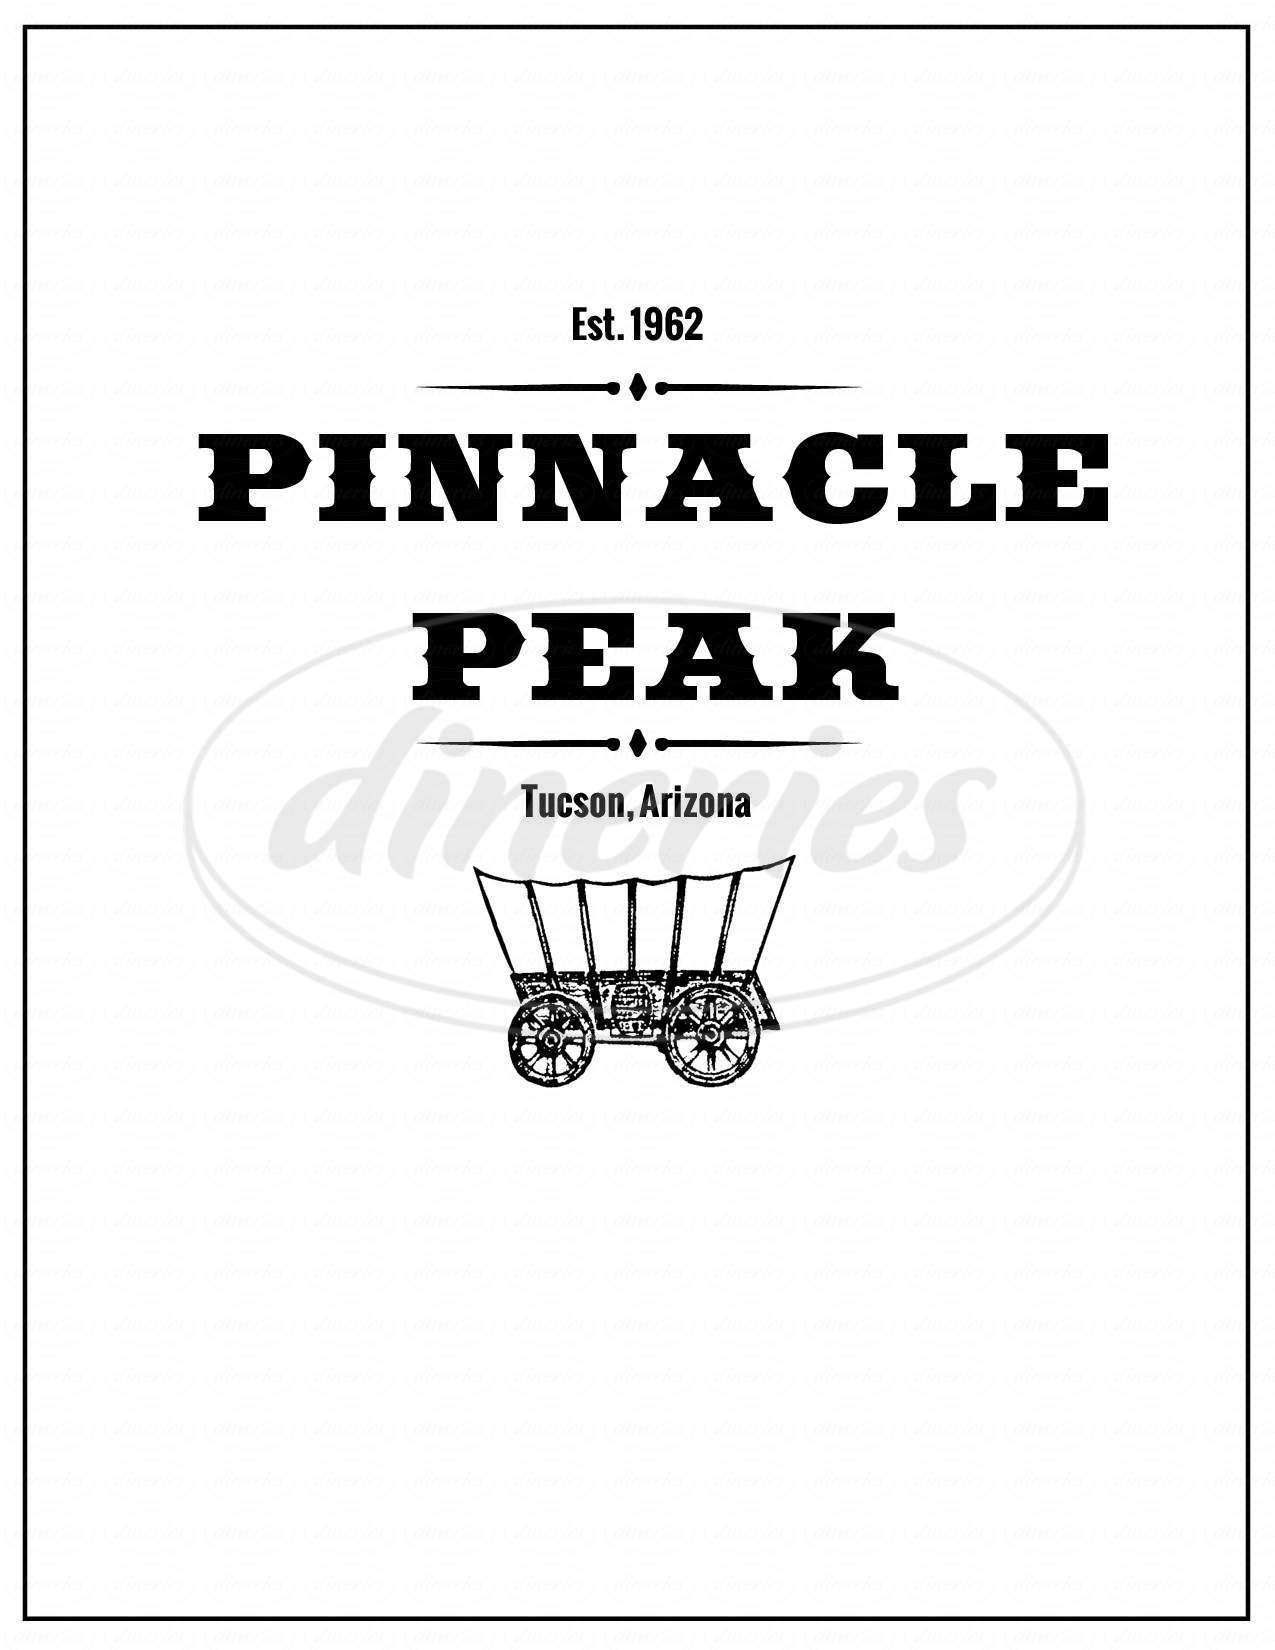 menu for Pinnacle Peak